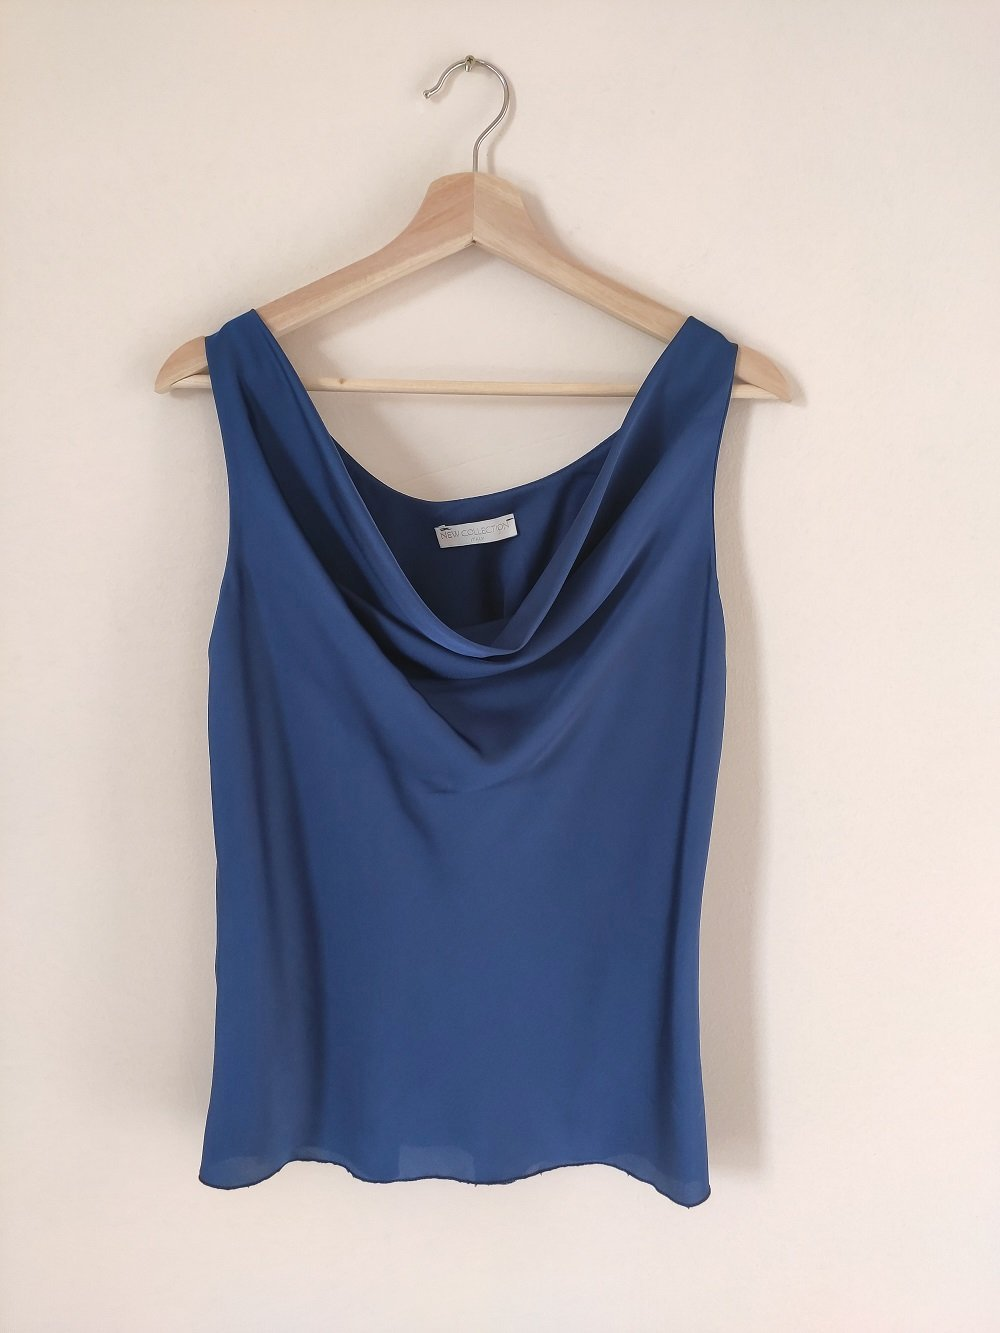 blue-sleeveless-blouse-satin-front-on-a-hanger